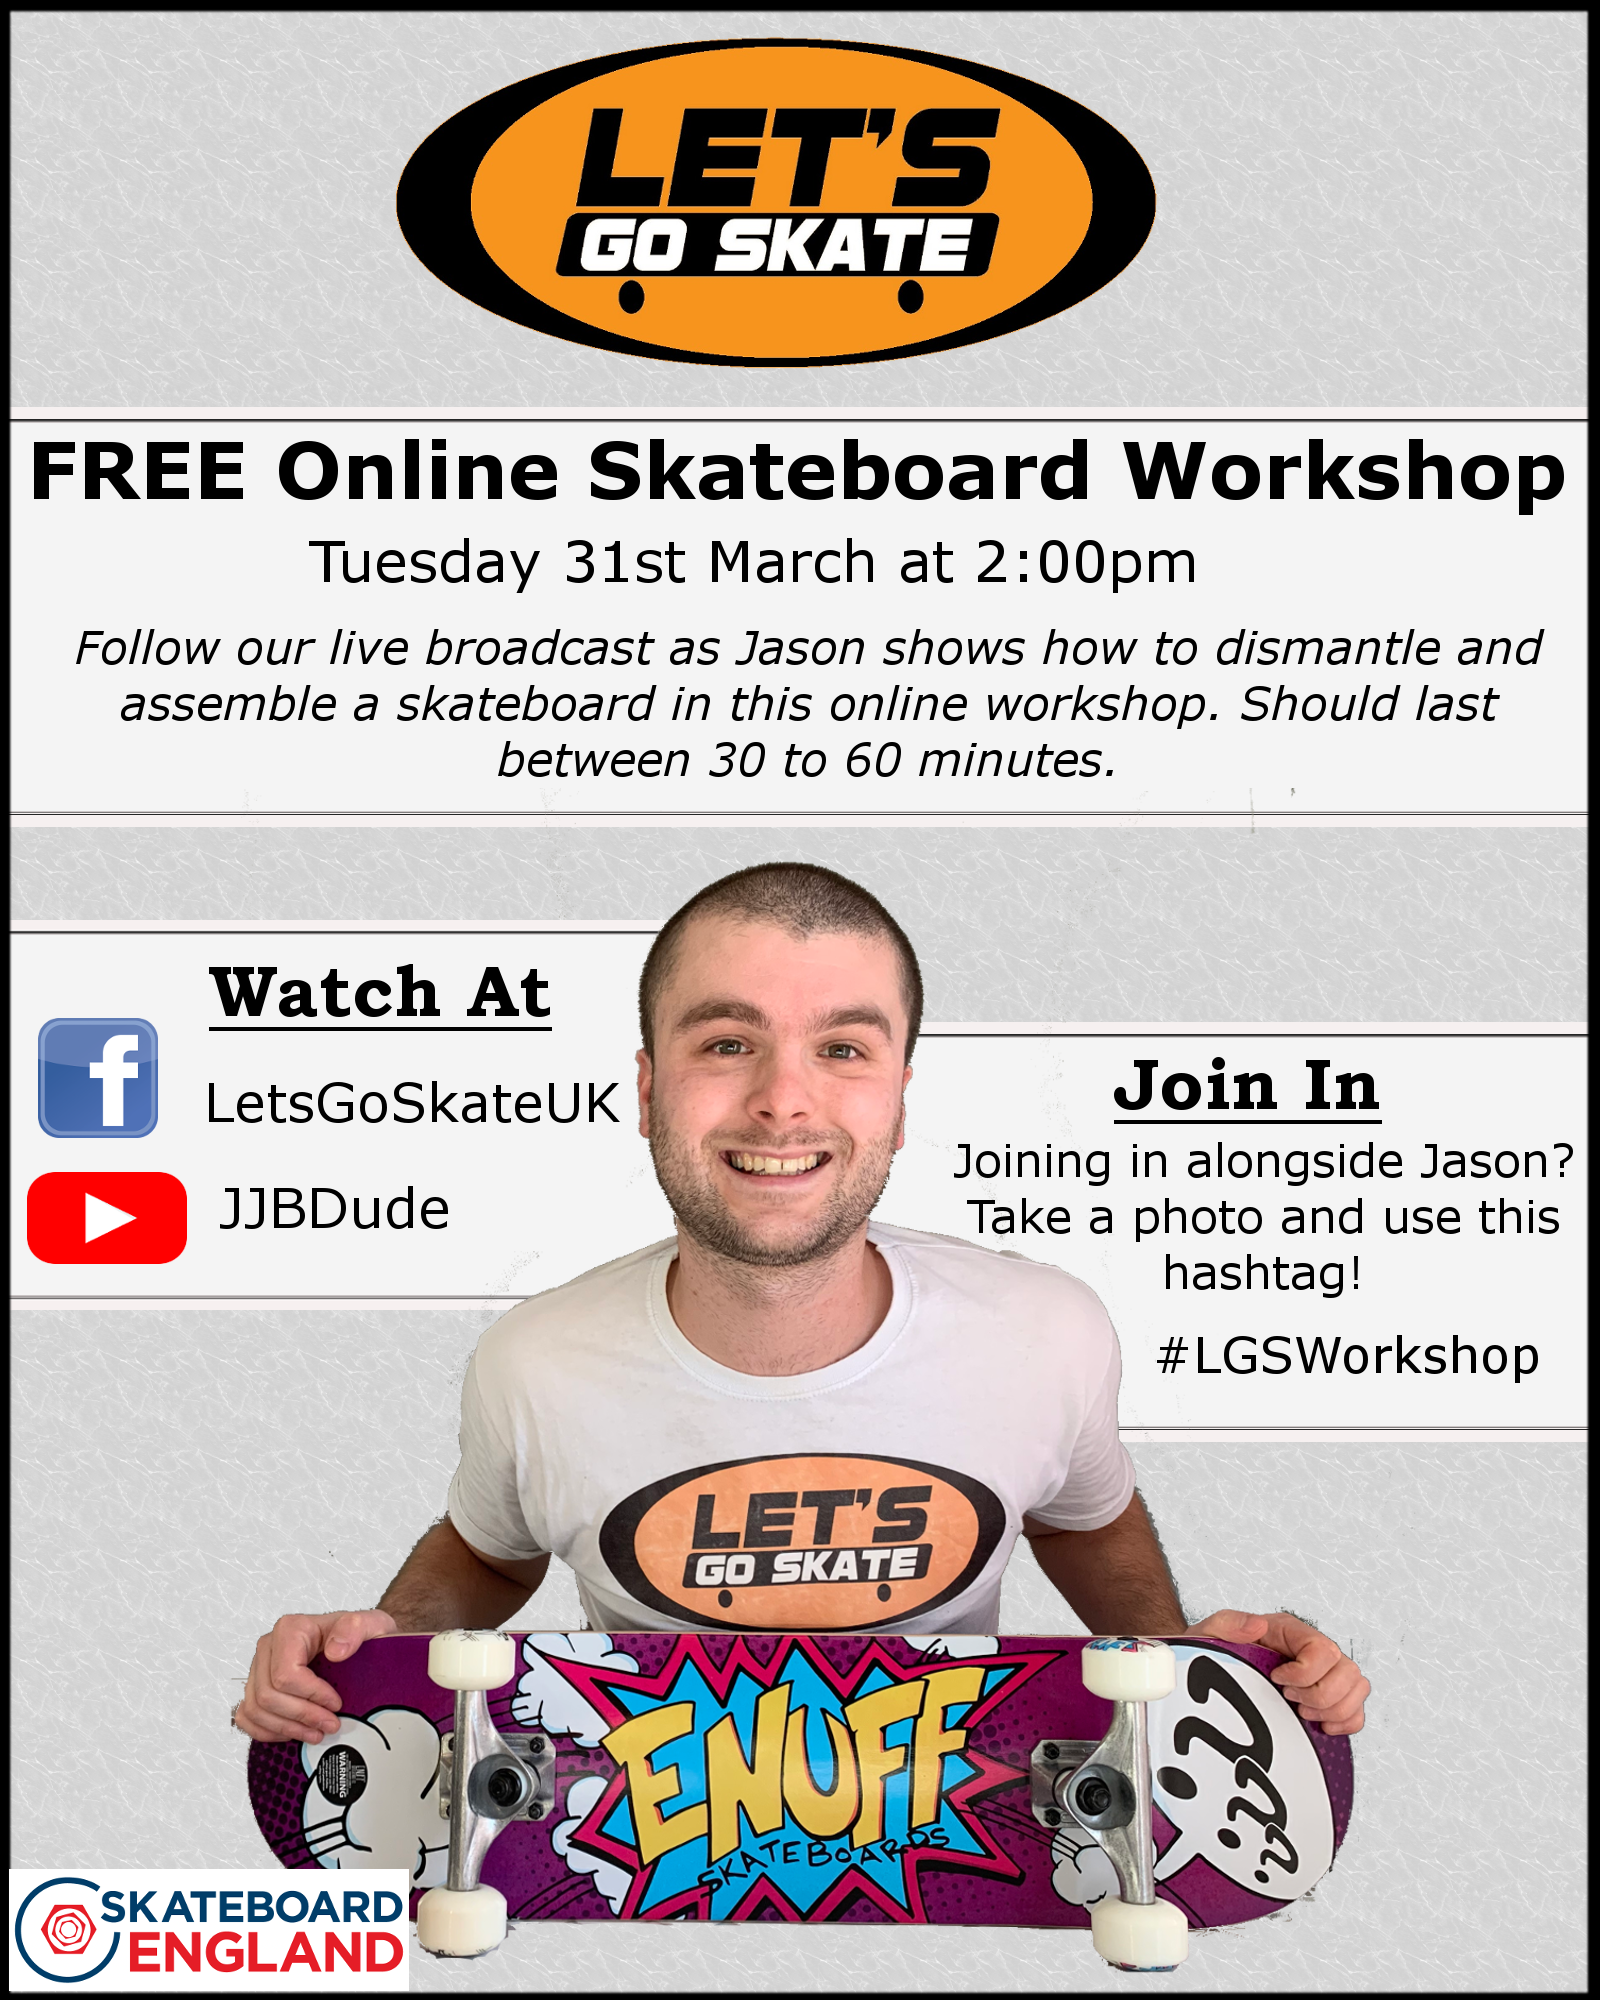 poster with details of workshop